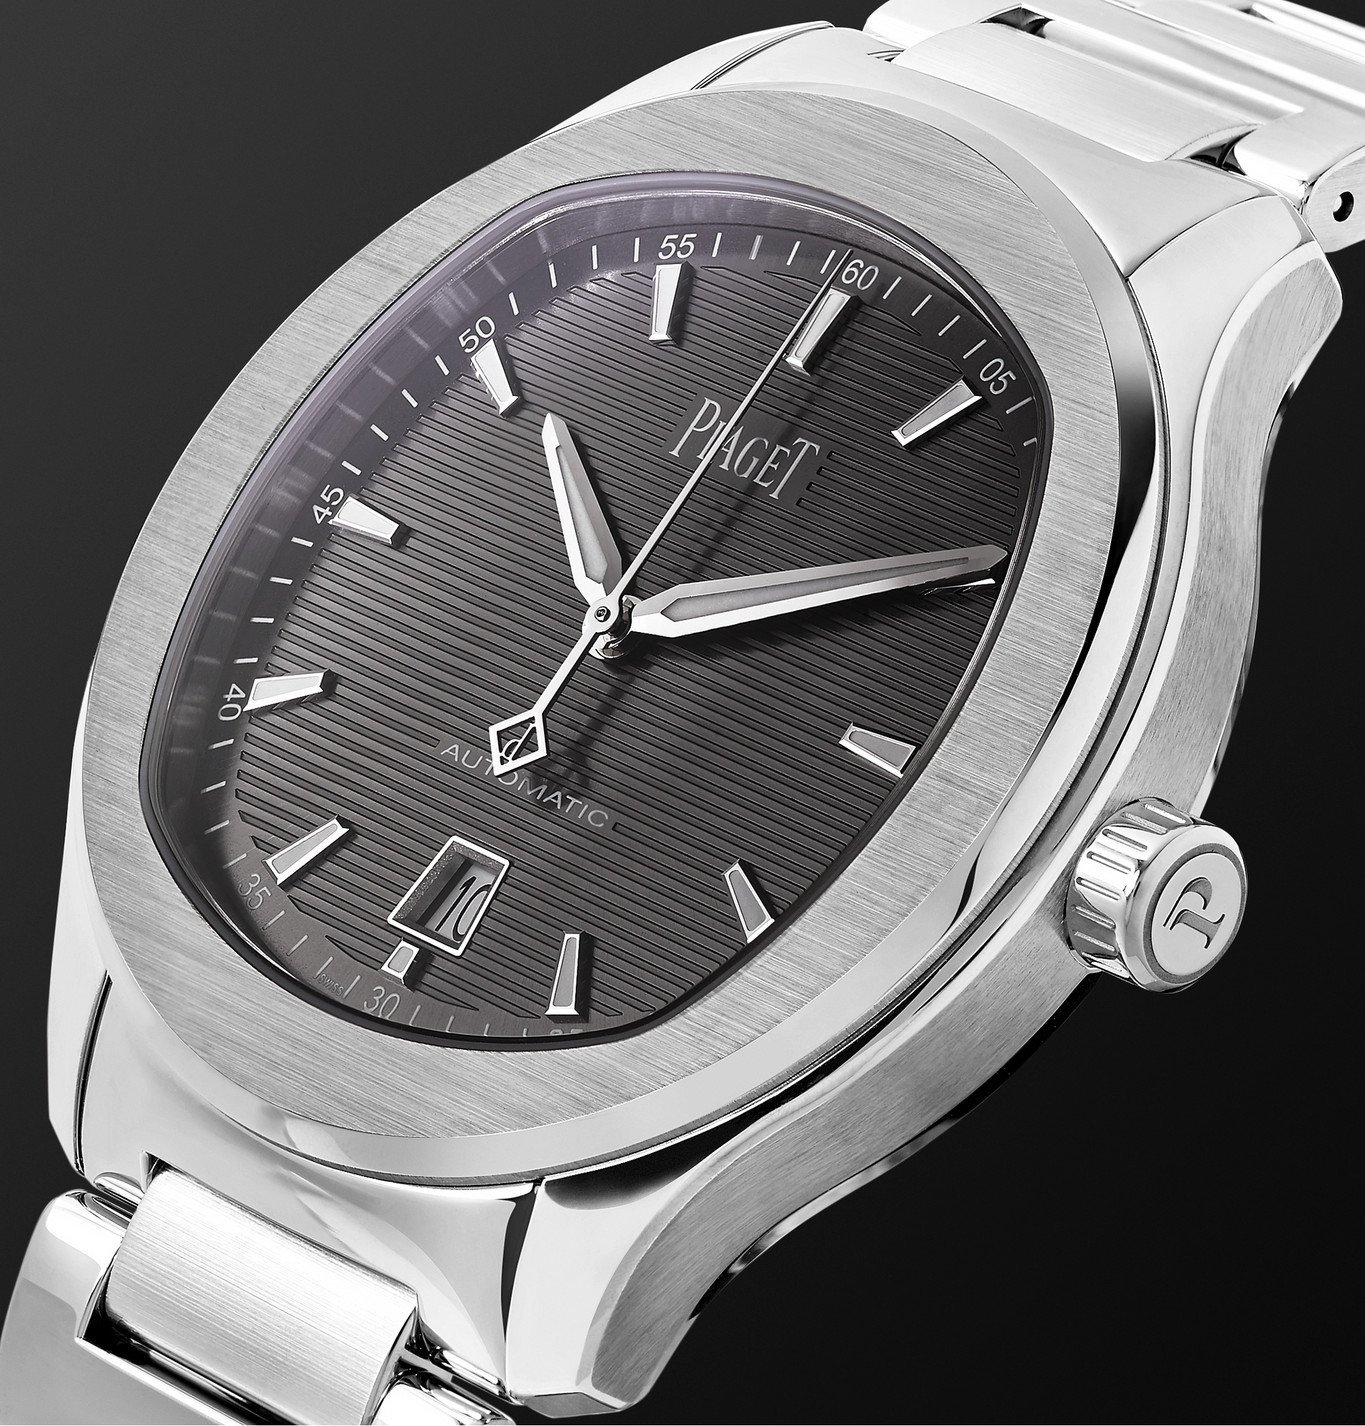 Piaget - Polo S Automatic 42mm Stainless Steel Watch, Ref. No. G0A41003 - Unknown